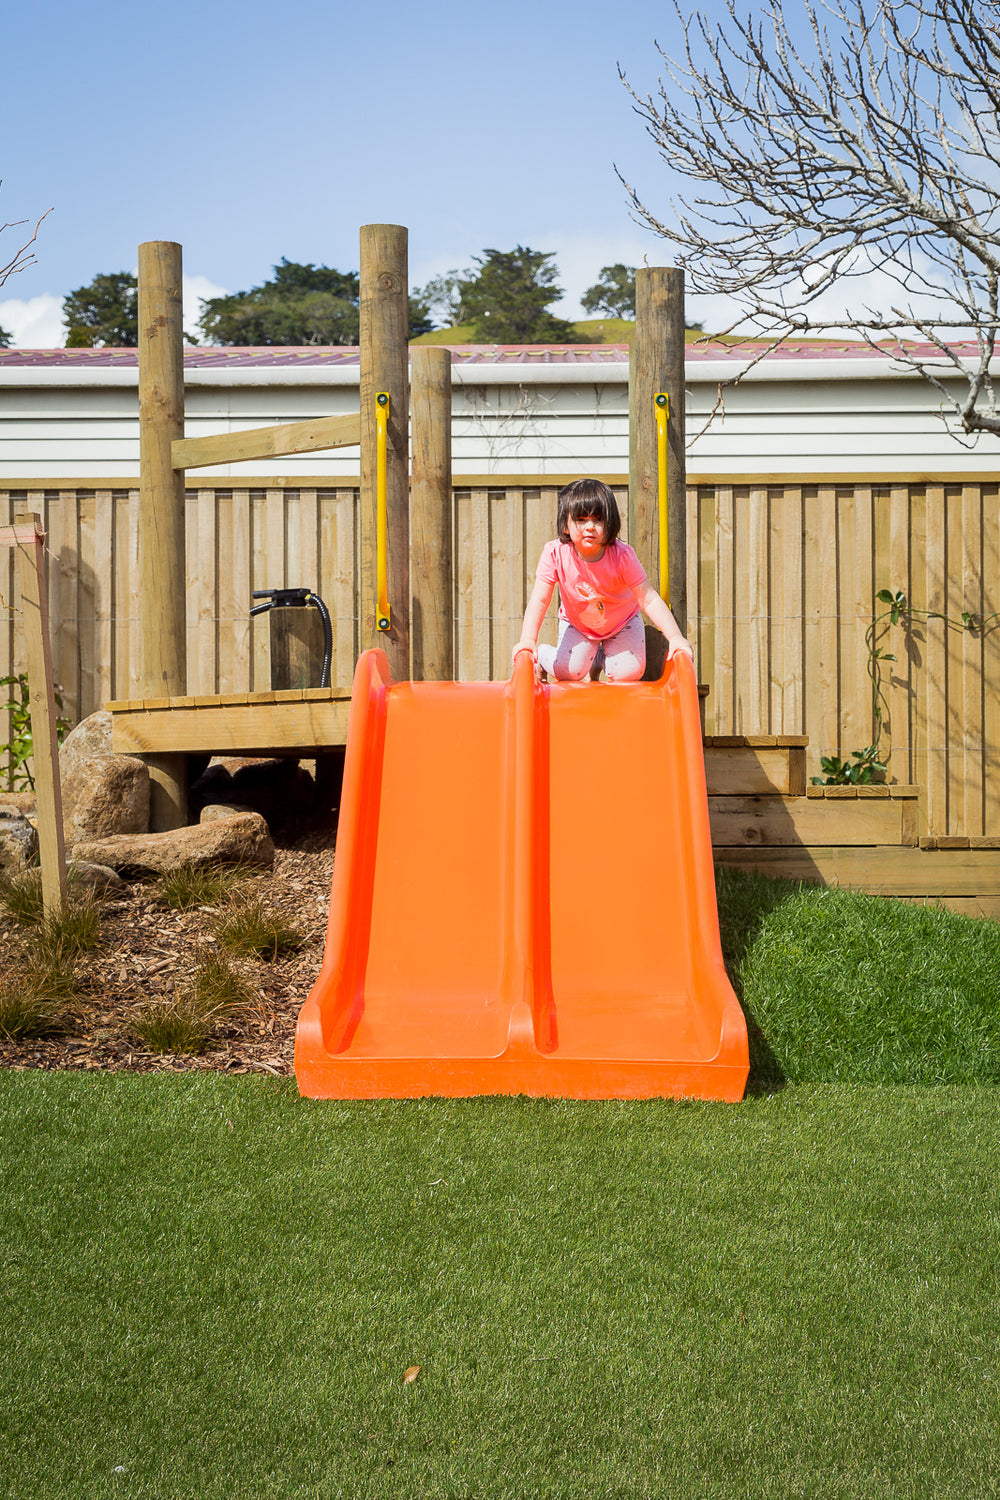 A young preschool girl playing on an orange slide at Spotted Frog Preschool